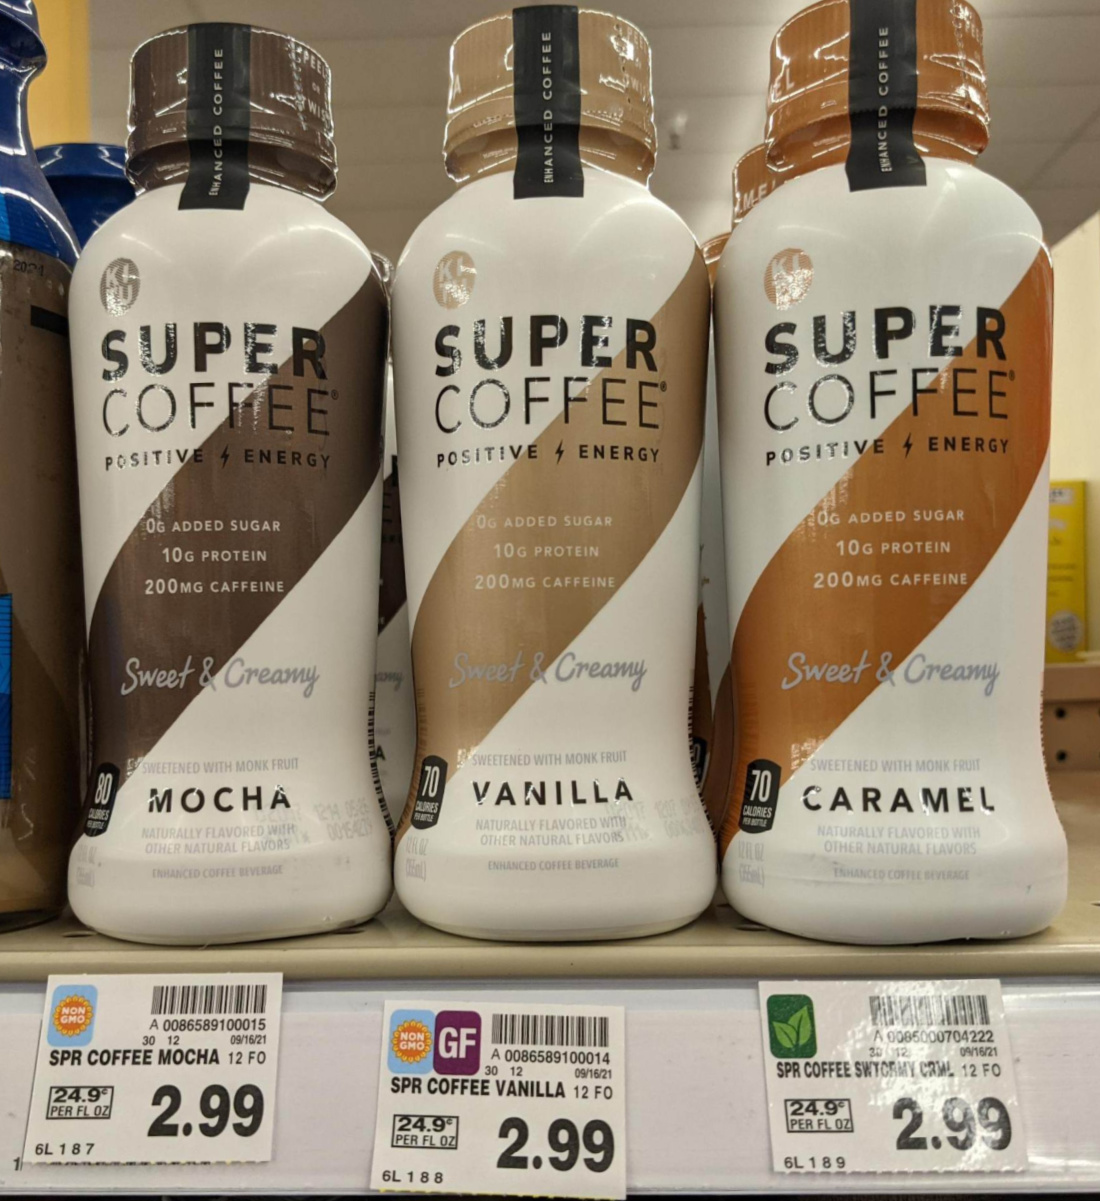 Grab Super Coffee For Just 50¢ At Kroger